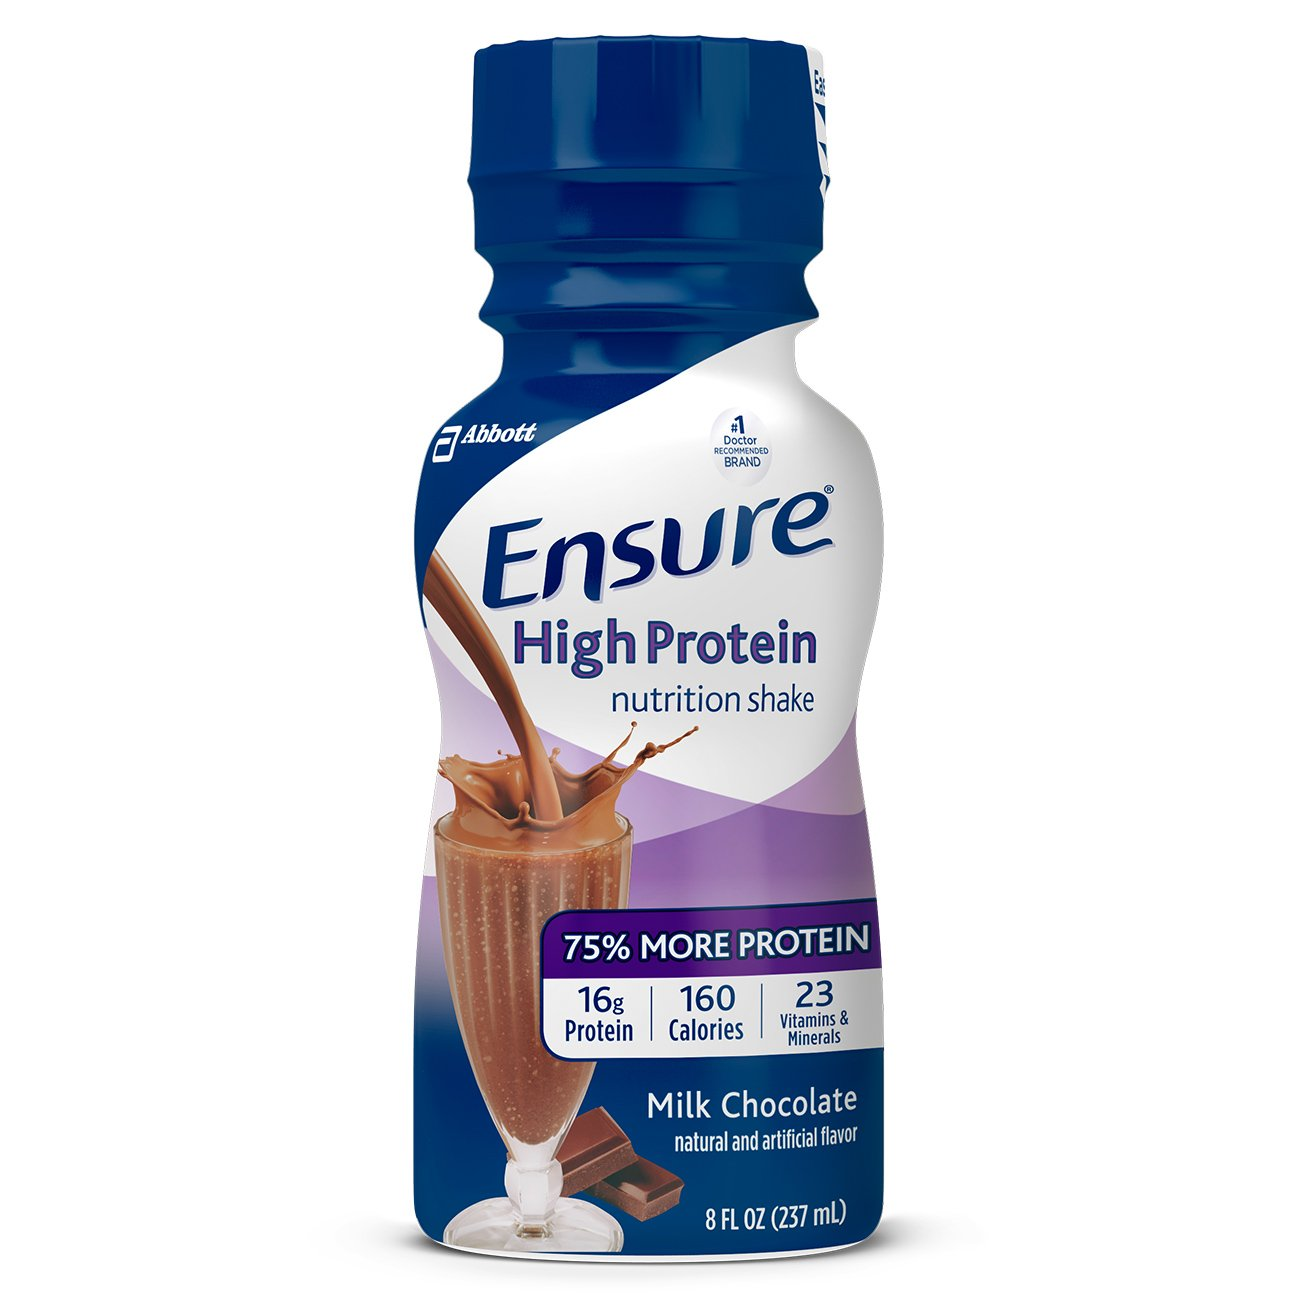 Ensure High Protein Nutrition Shake with 16 grams of high-quality protein, Meal Replacement Shakes, Low Fat, Milk Chocolate, 8 fl oz, 24 count